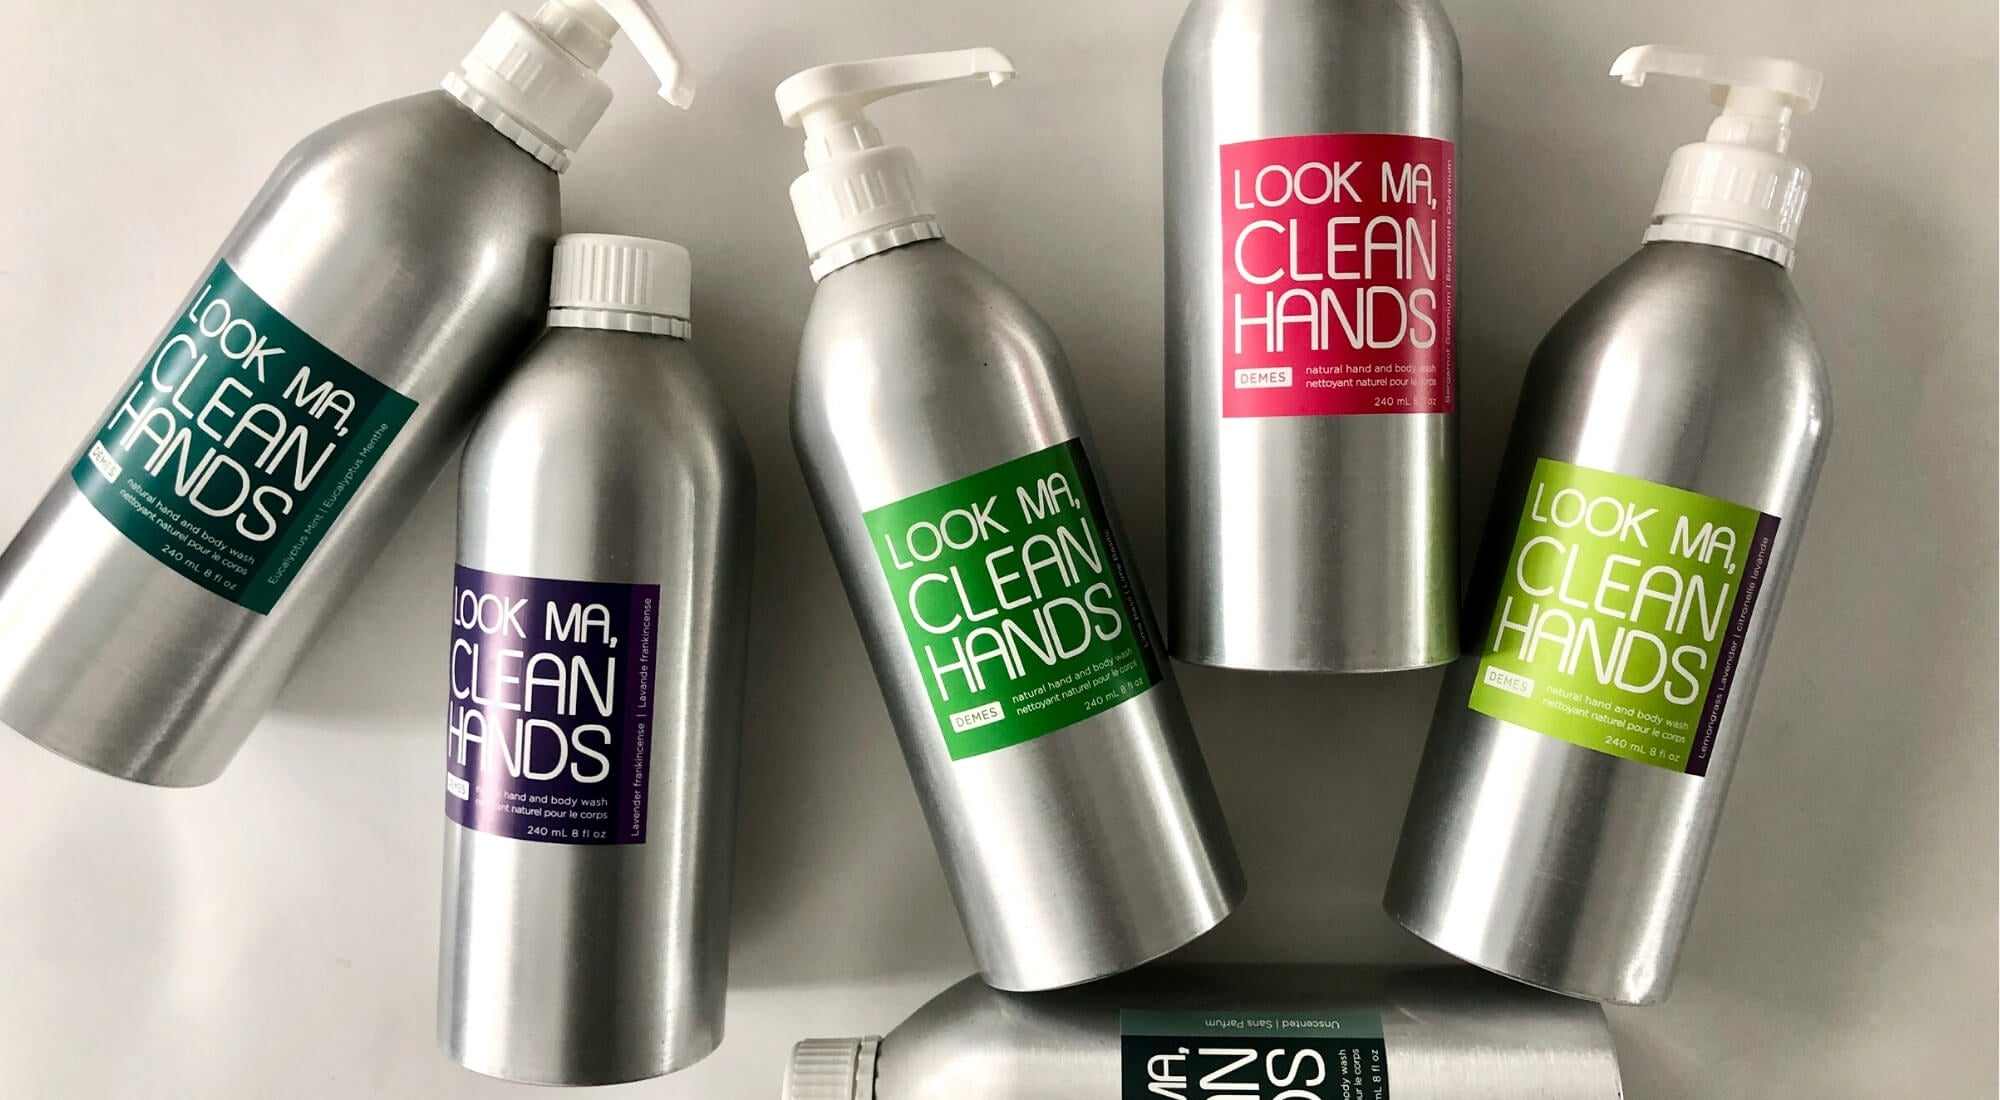 DEMES Look Ma Clean Hands natural hand and body wash